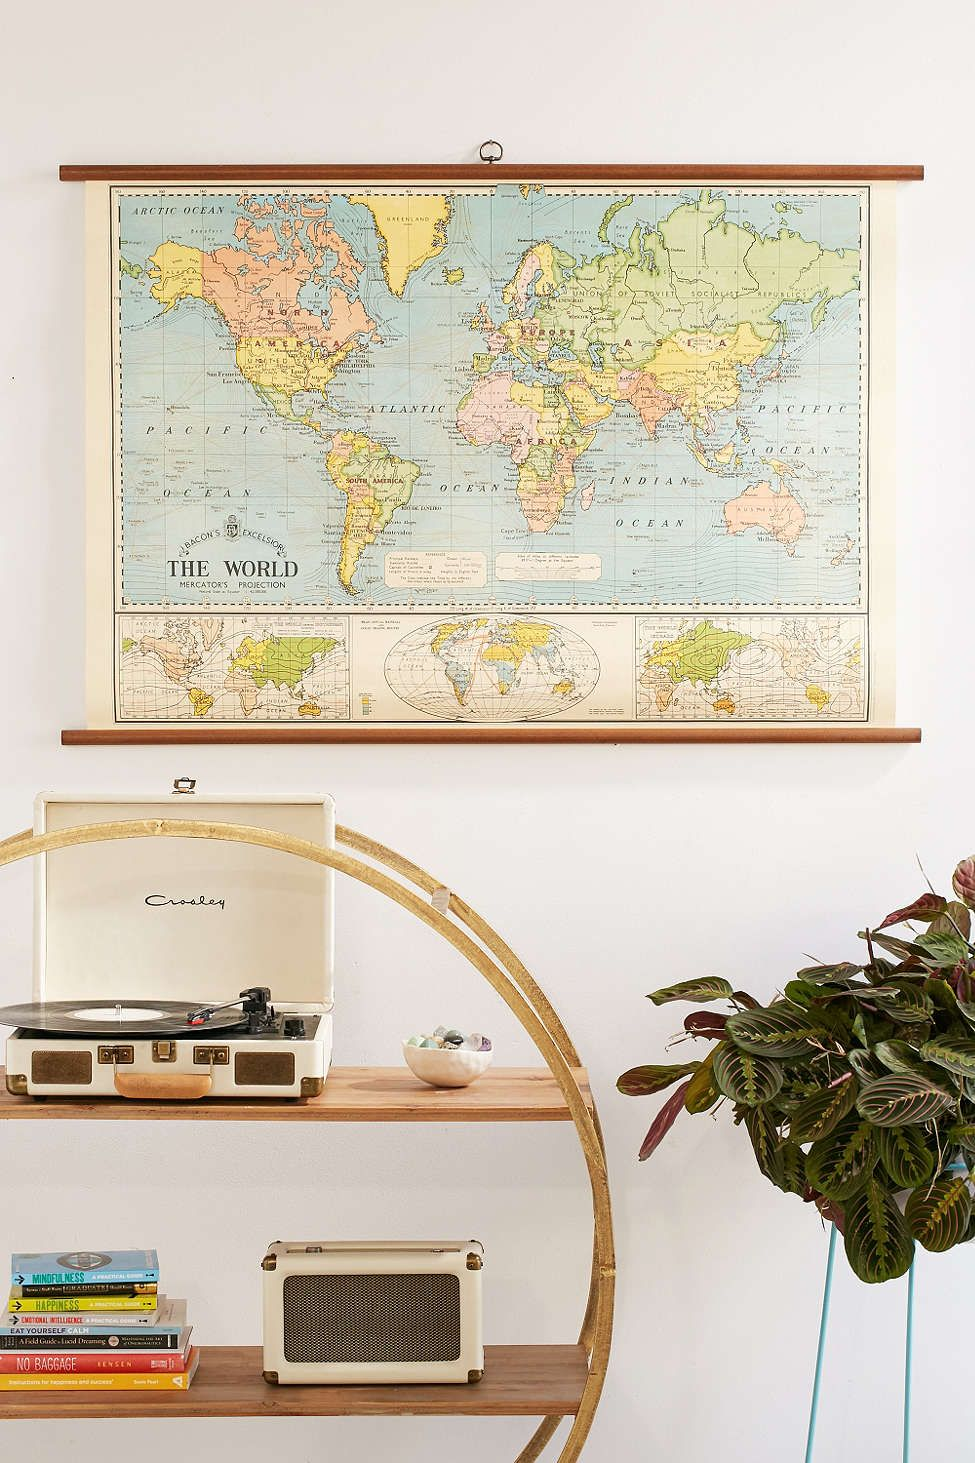 World map school chart wall hanging chart urban outfitters and school world map school chart wall hanging urban outfitters gumiabroncs Image collections